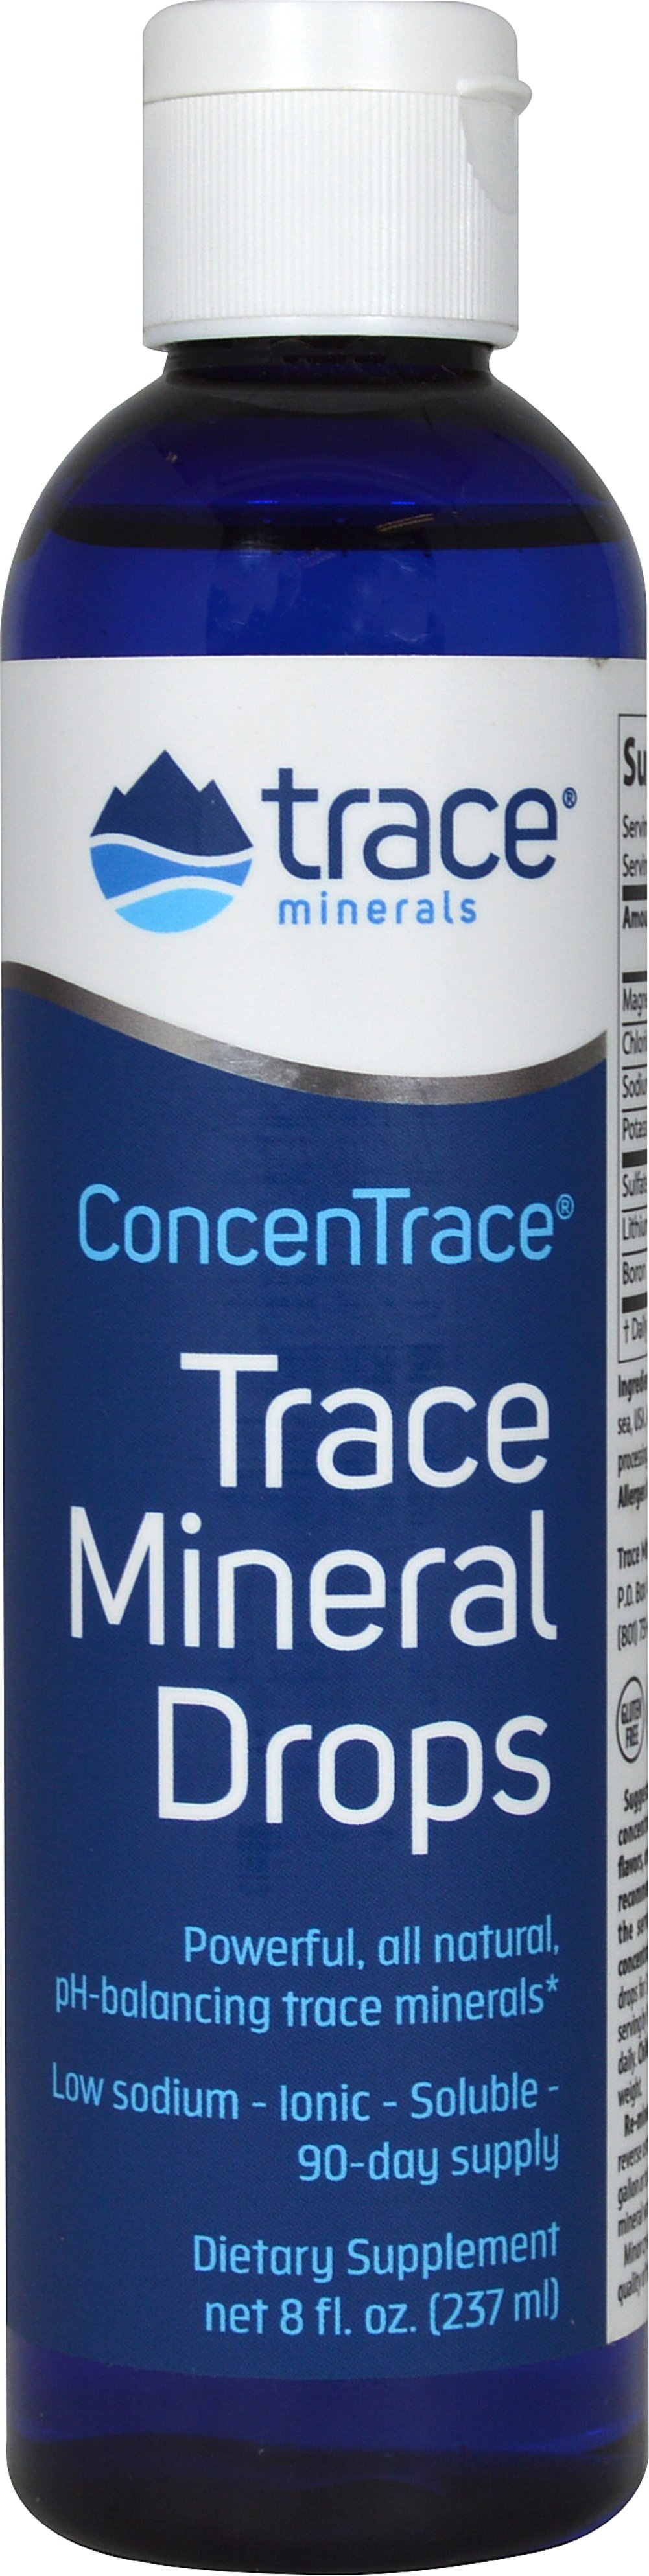 Concentrace Trace Minerals <p><strong>From the Manufacturer's Label:</strong></p><p>ConcenTrace® Trace Mineral Drops is a natural mineral concentrate that is so concentrated that 40 drops (½ teaspoon) equals the mineral content of ½ cup sea water with 99% sodium removed.  You may expect a wide spectrum of nutritional benefits. For regular or sodium restricted diets.</p><p>Manufactured by Trace Minerals.</p> 8 oz Liquid  $16.99